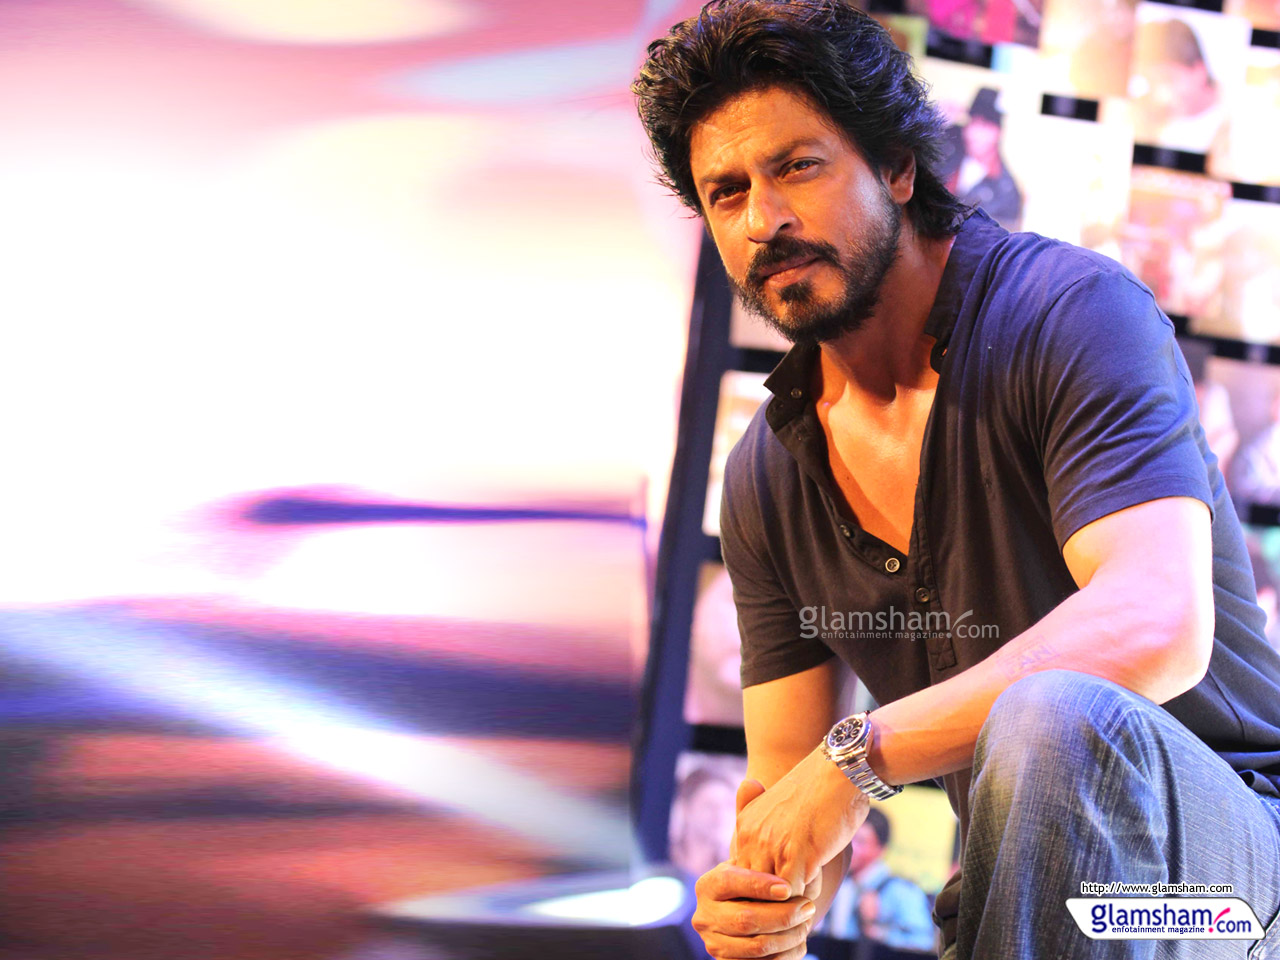 Download shahrukh khan new hd wallpaper gallery - Shahrukh khan cool wallpaper ...